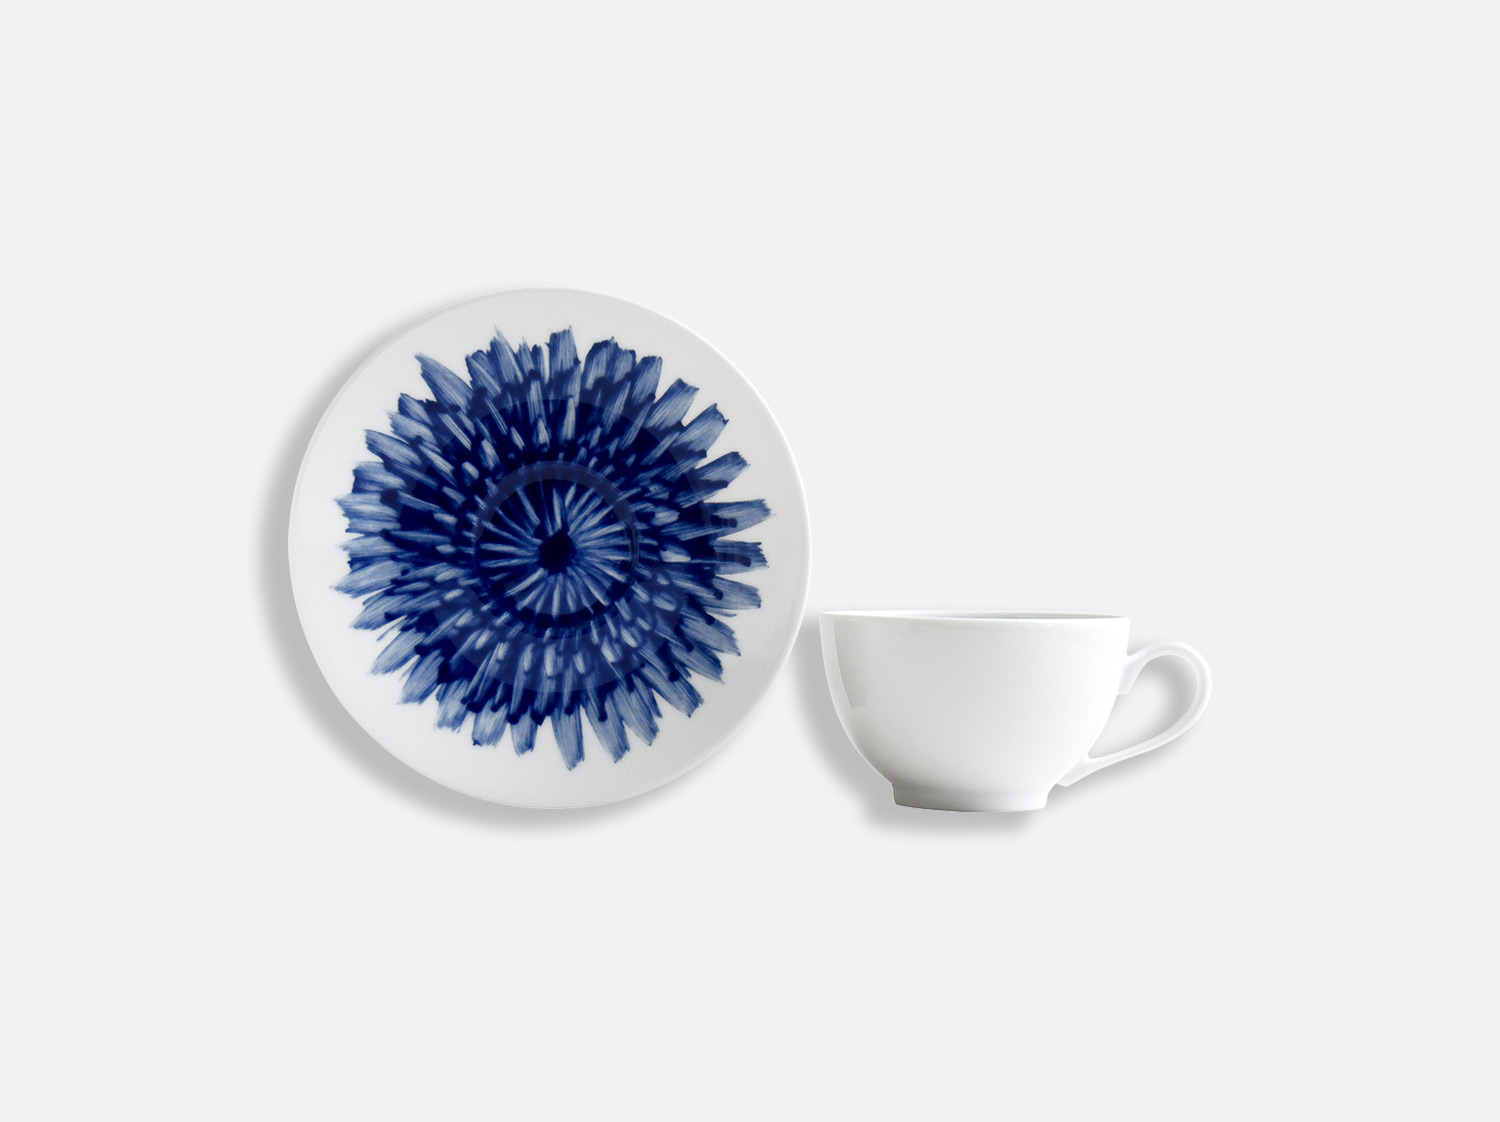 Tasse et soucoupe thé 13 cl en porcelaine de la collection IN BLOOM - Zemer Peled Bernardaud